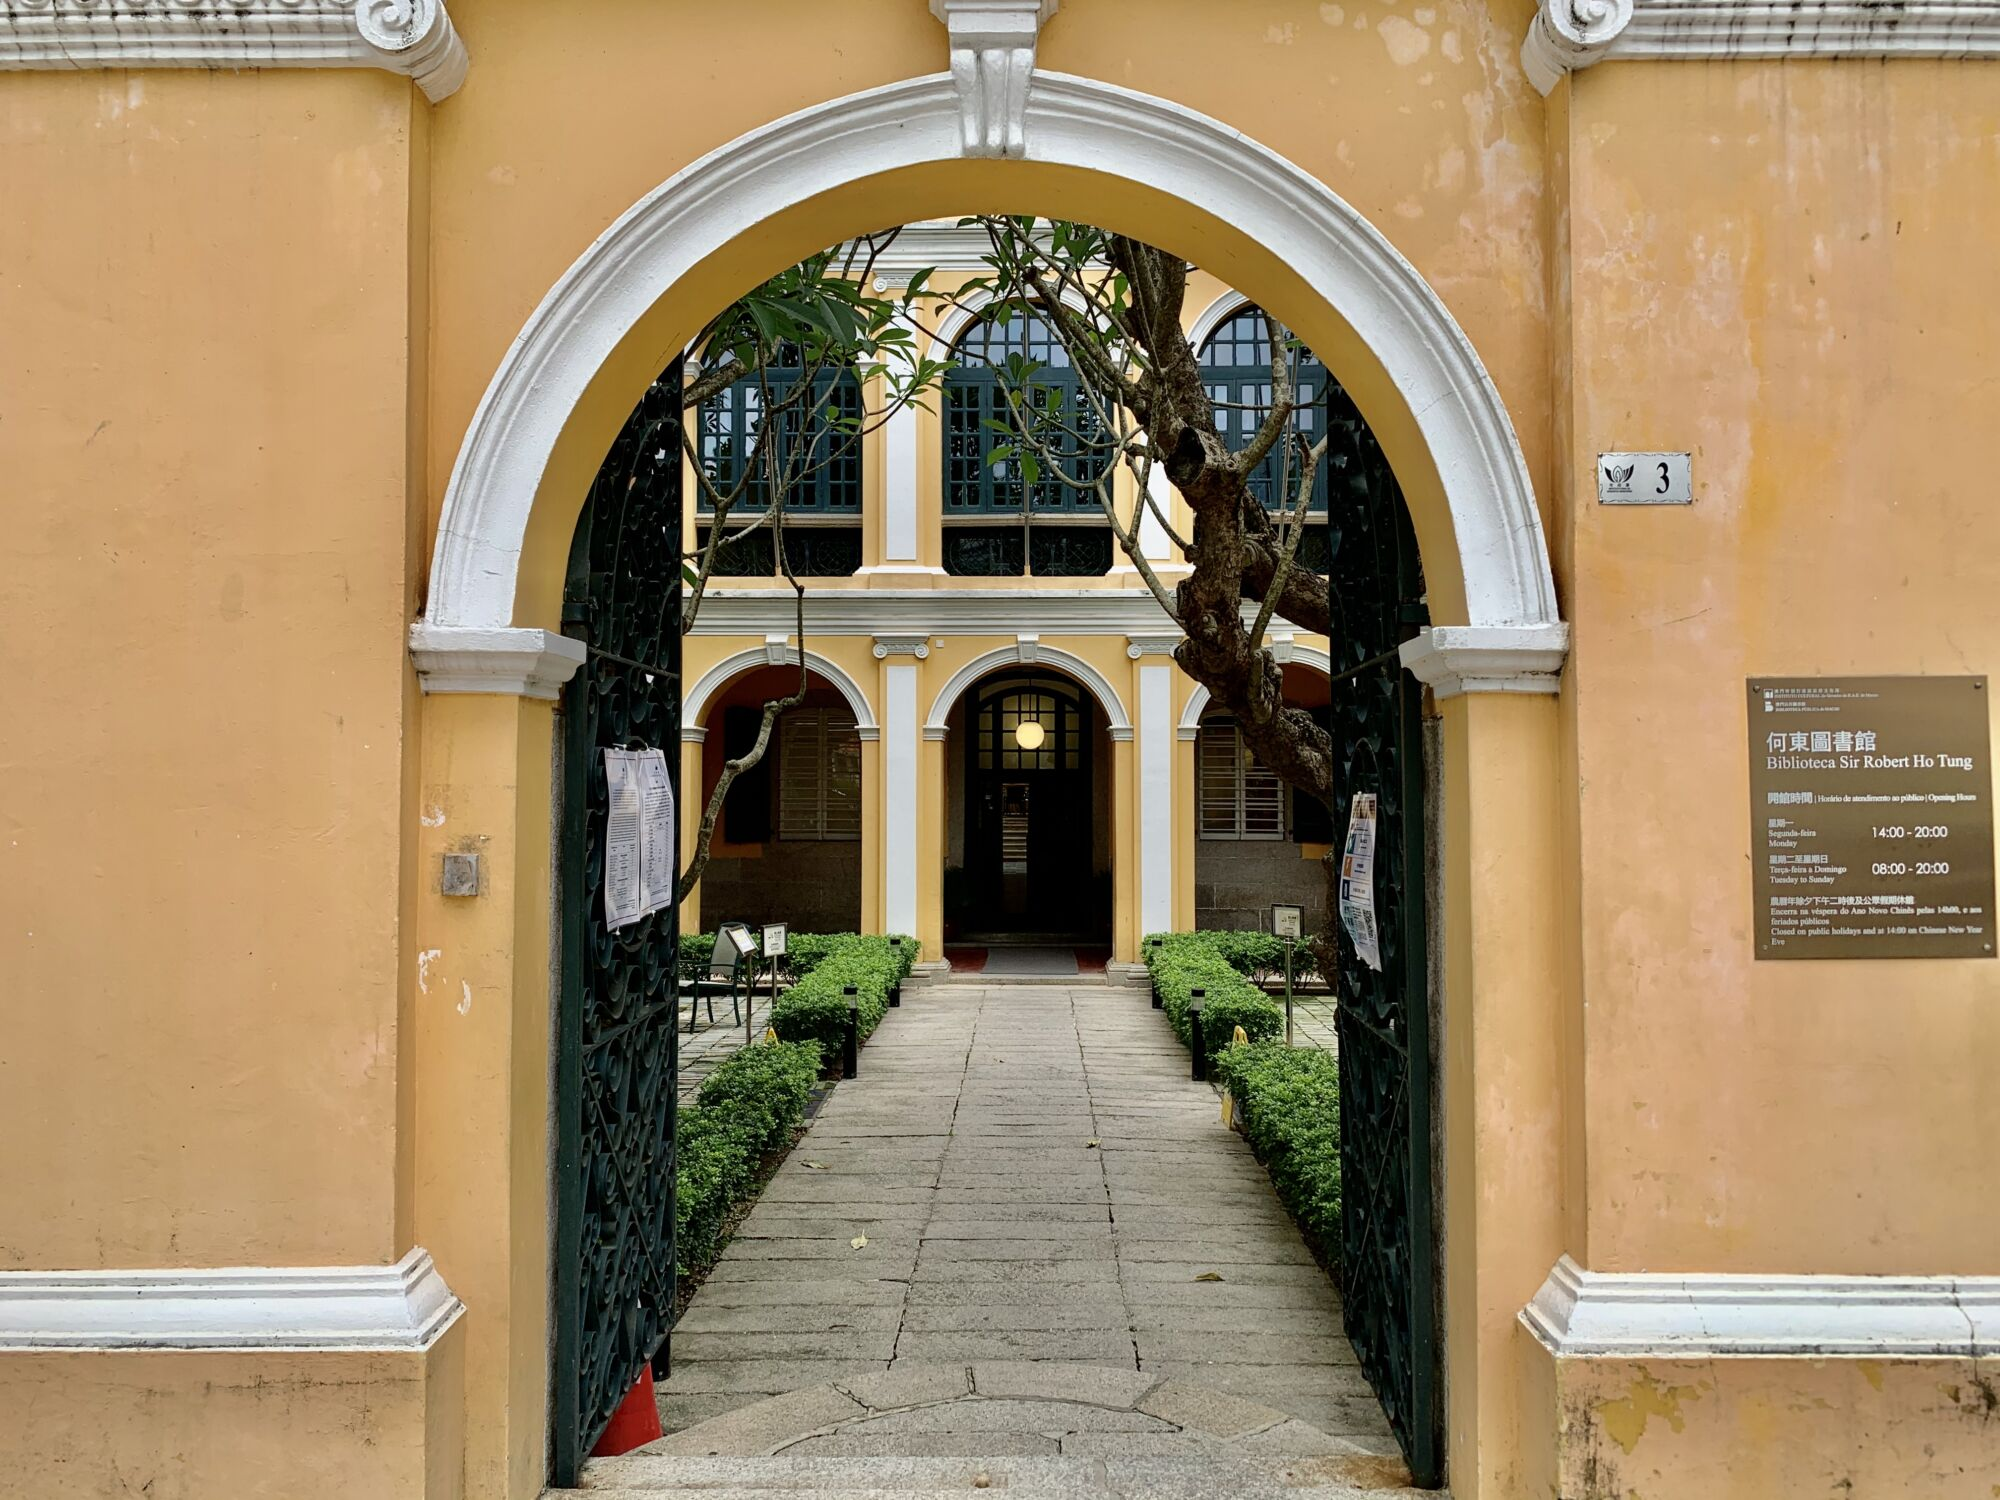 Sir Robert Ho Tung Library Exterior Entrance Macau Lifestyle